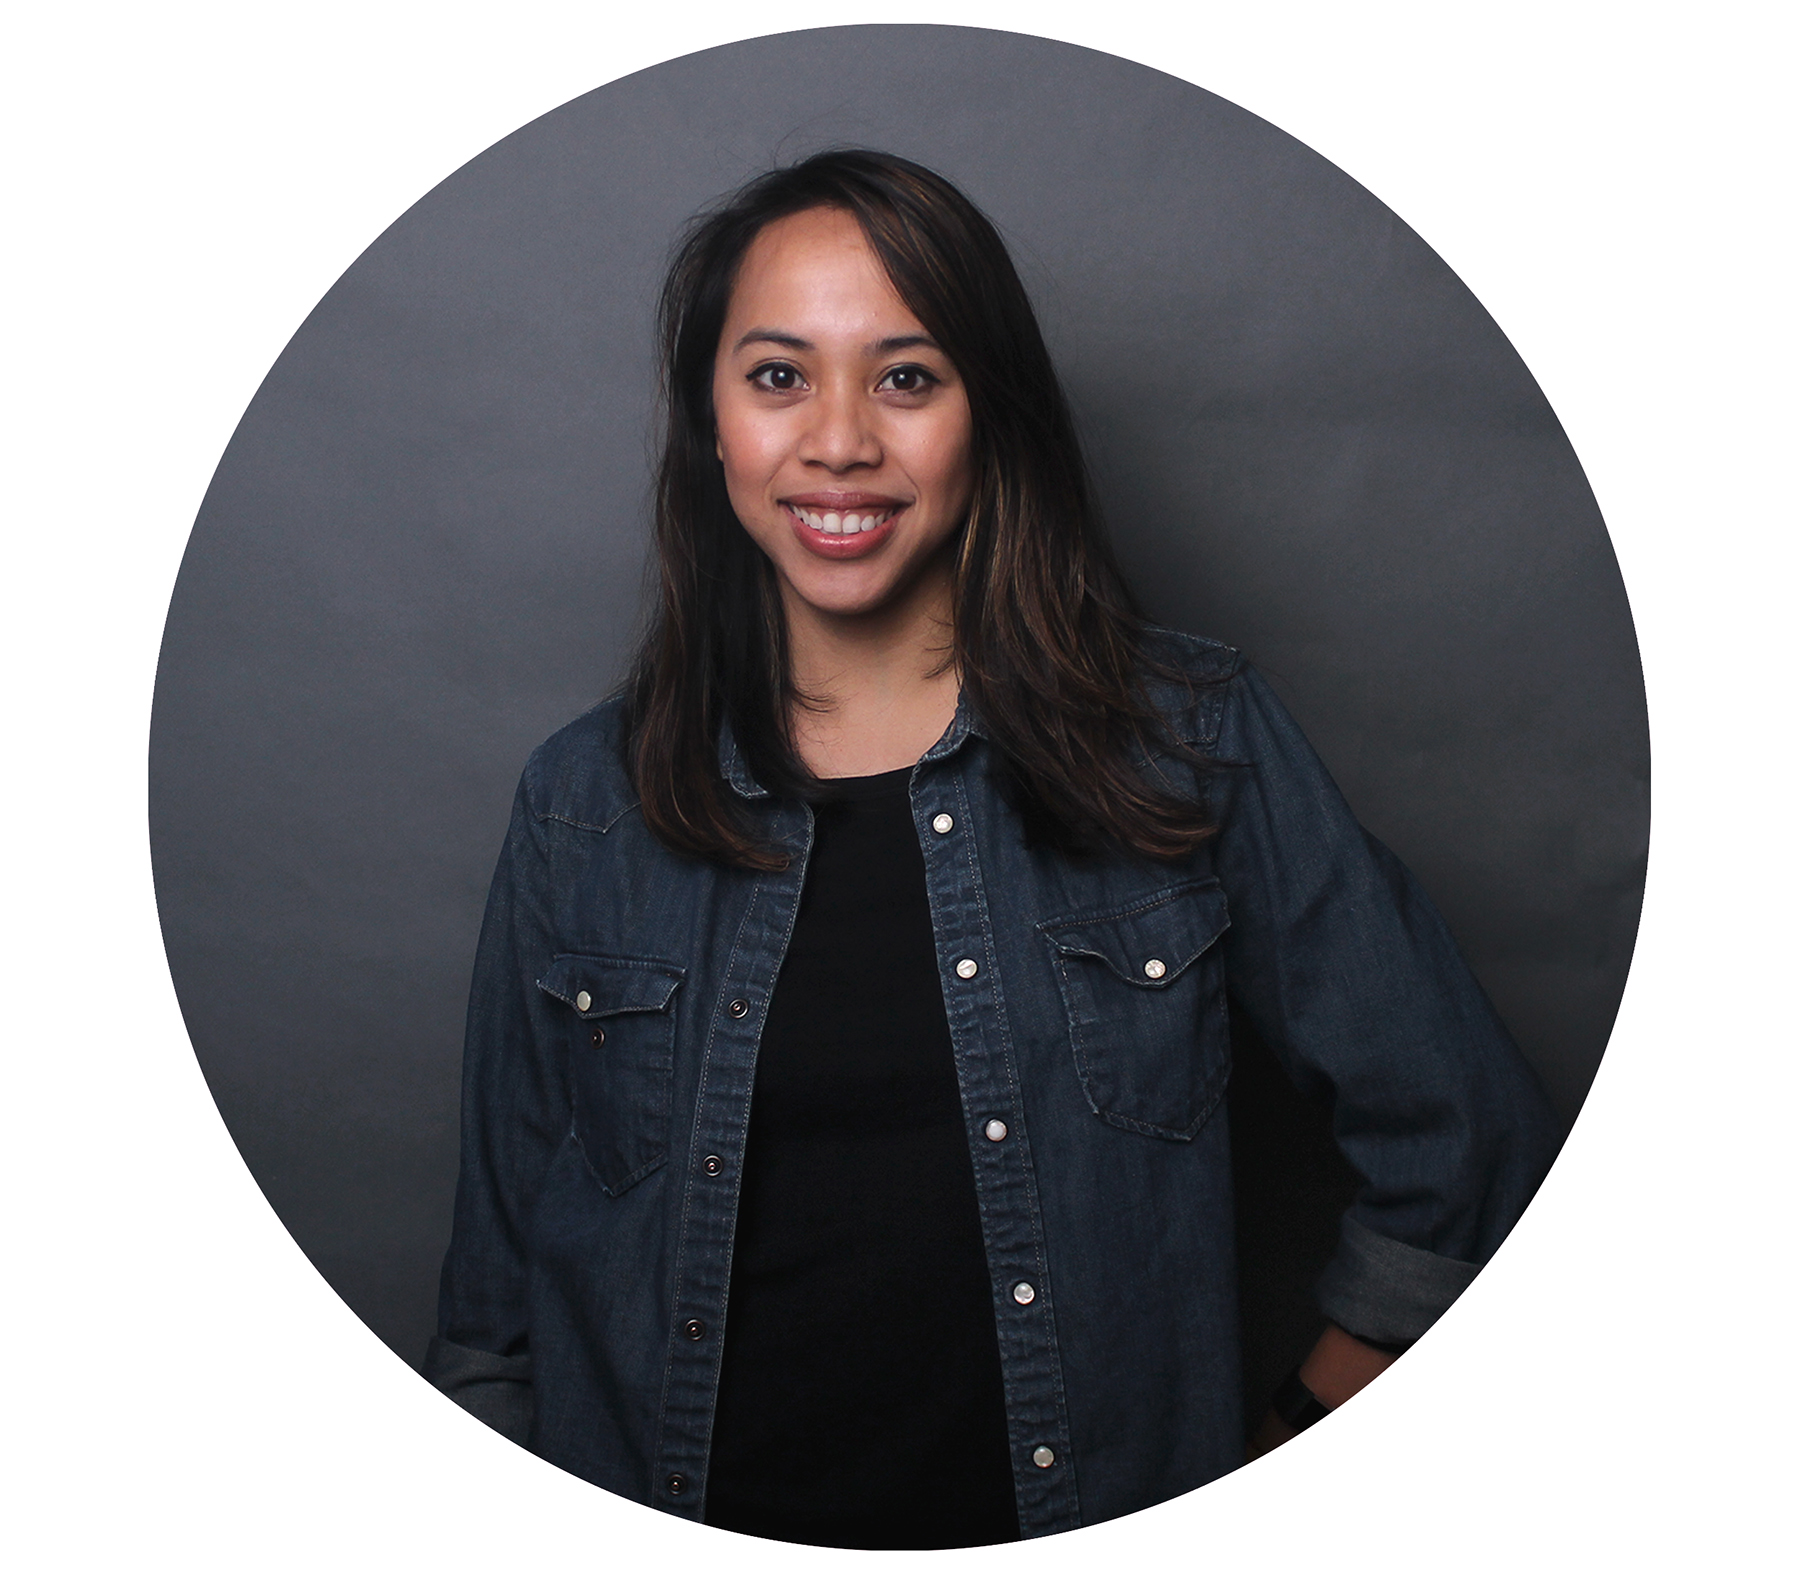 MELISSA CONSTANTINO - Music Studios Program Manager